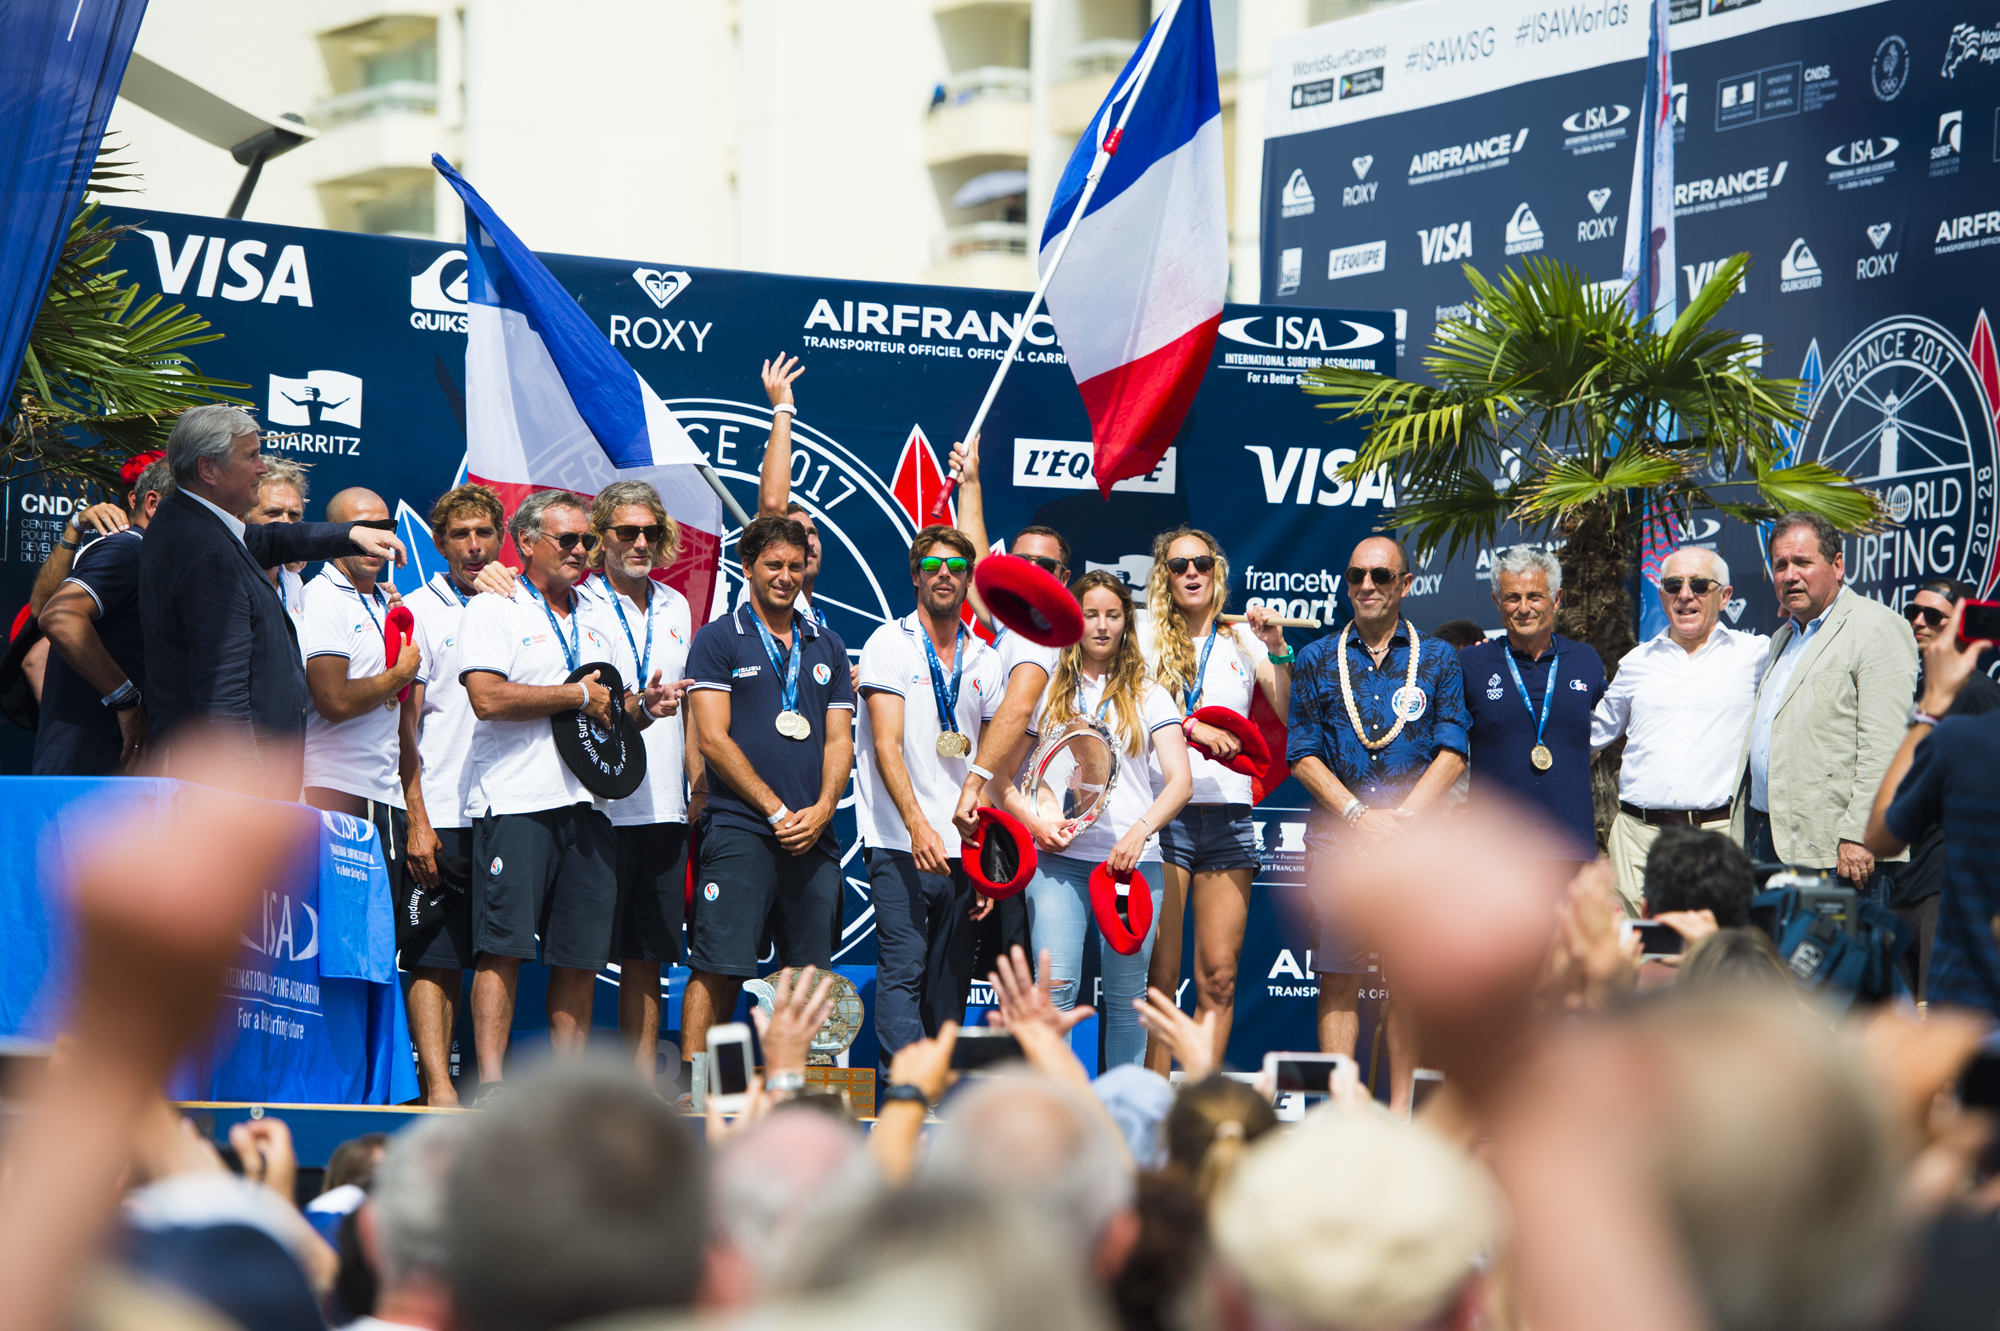 podium-france-ISA-world-surfing-games-2017-biarritz-antoine-justes-we-creative